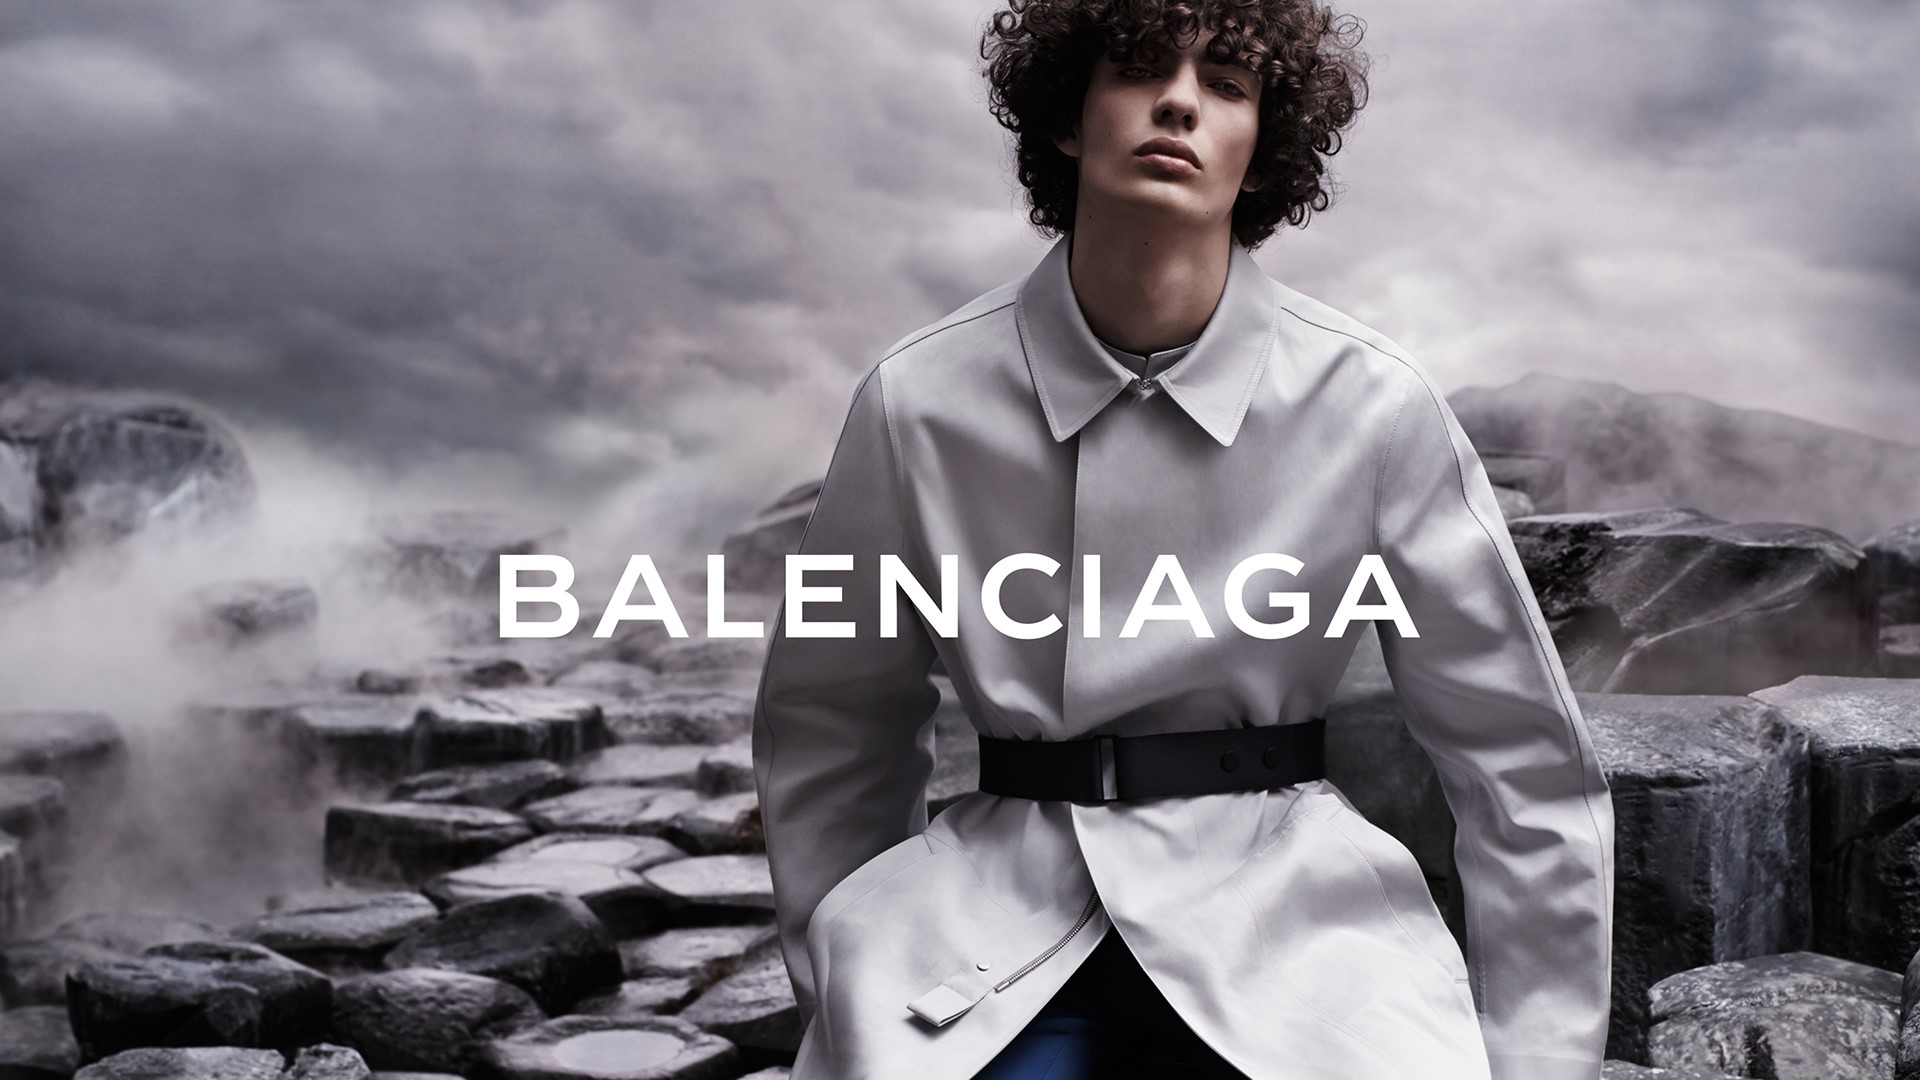 Balenciaga PC Wallpaper